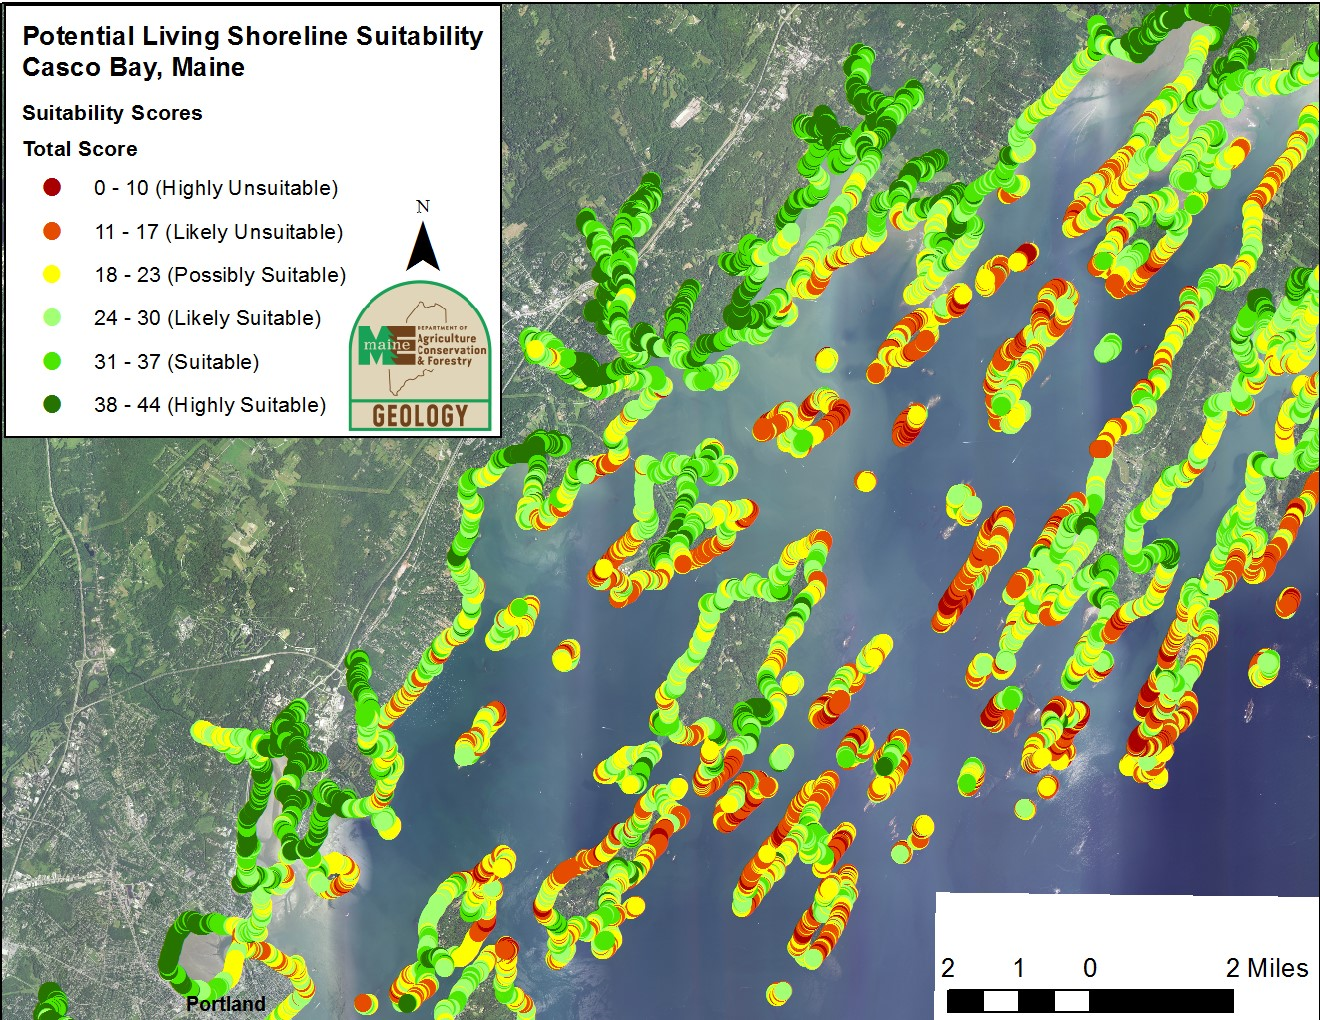 Coastal oblique imagery used to map living shoreline suitability in Casco Bay, Maine